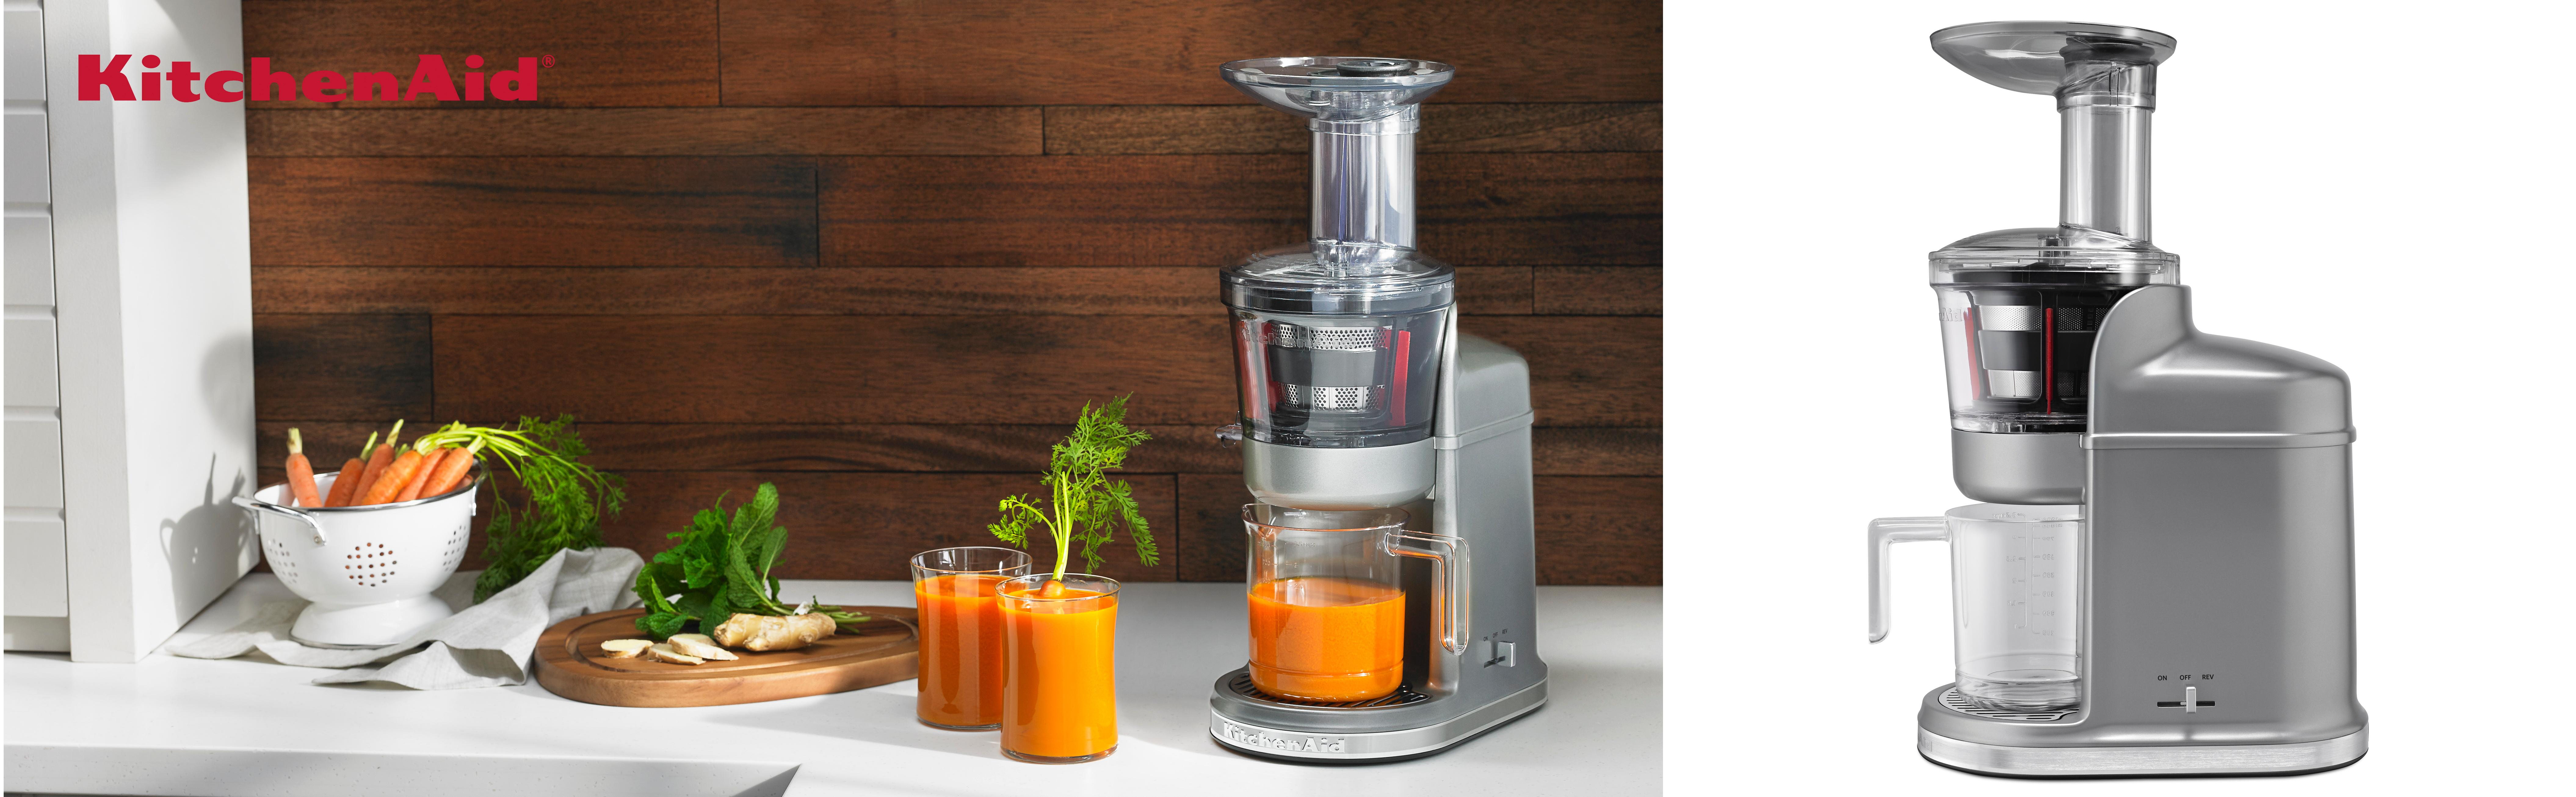 Amazon.com: KitchenAid KvJ0111CU Maximum Extraction Juicer ...